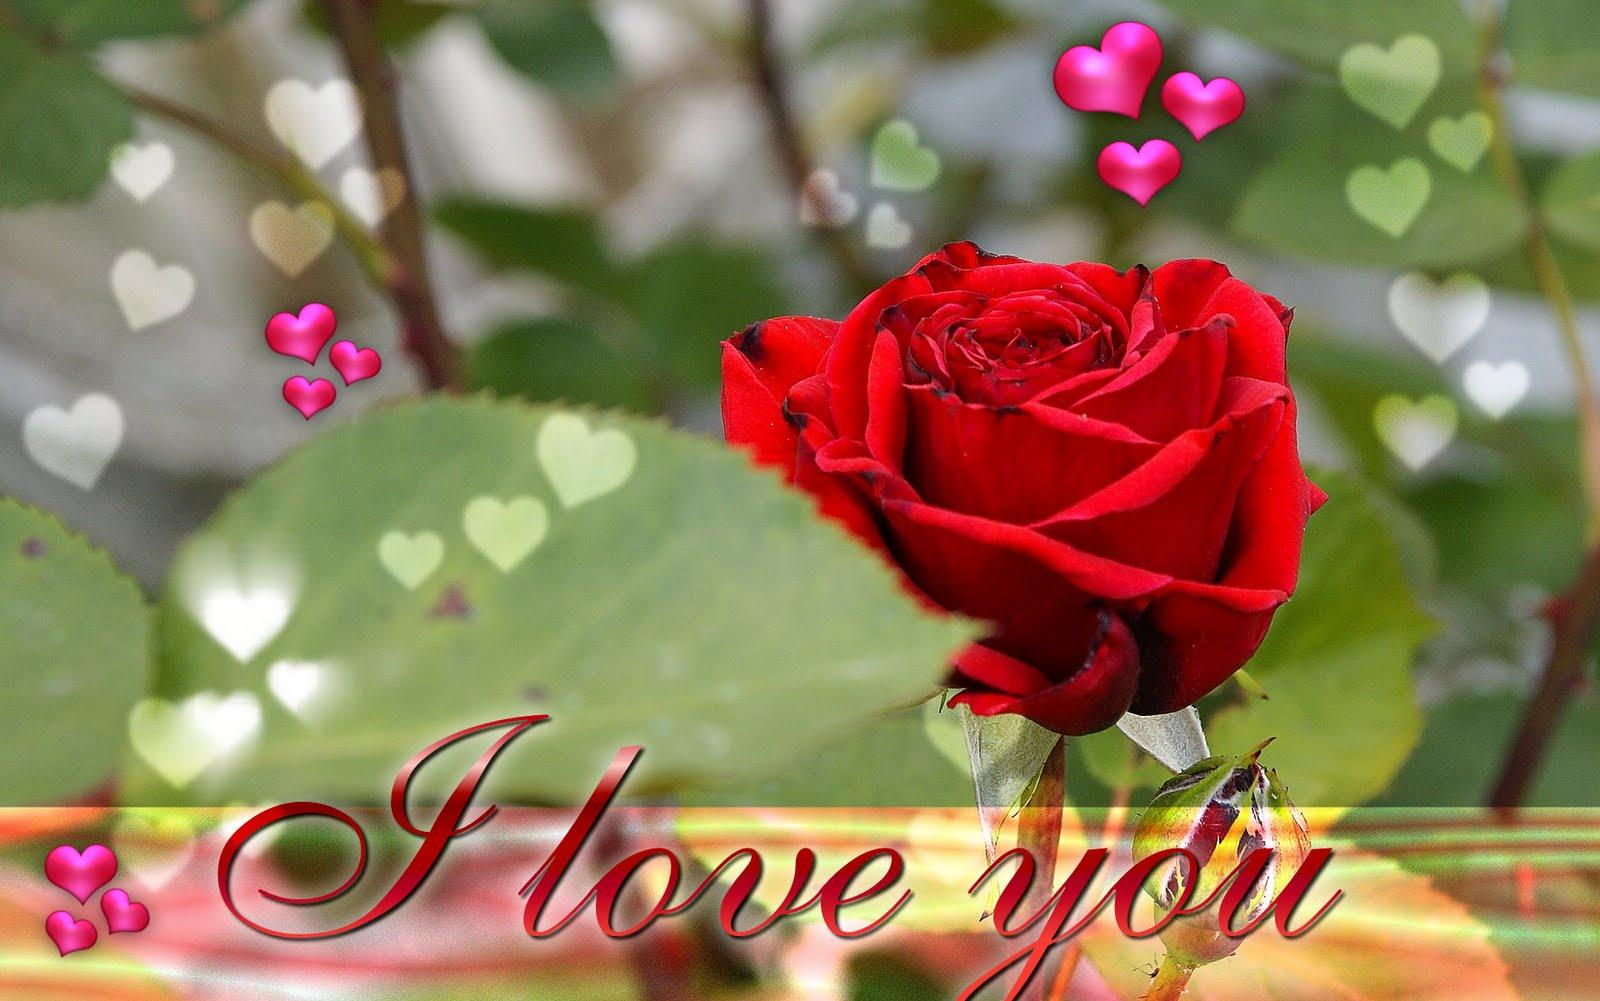 Ever Cool Wallpaper: I Love You My Sweetheart   Love   I Love You ...